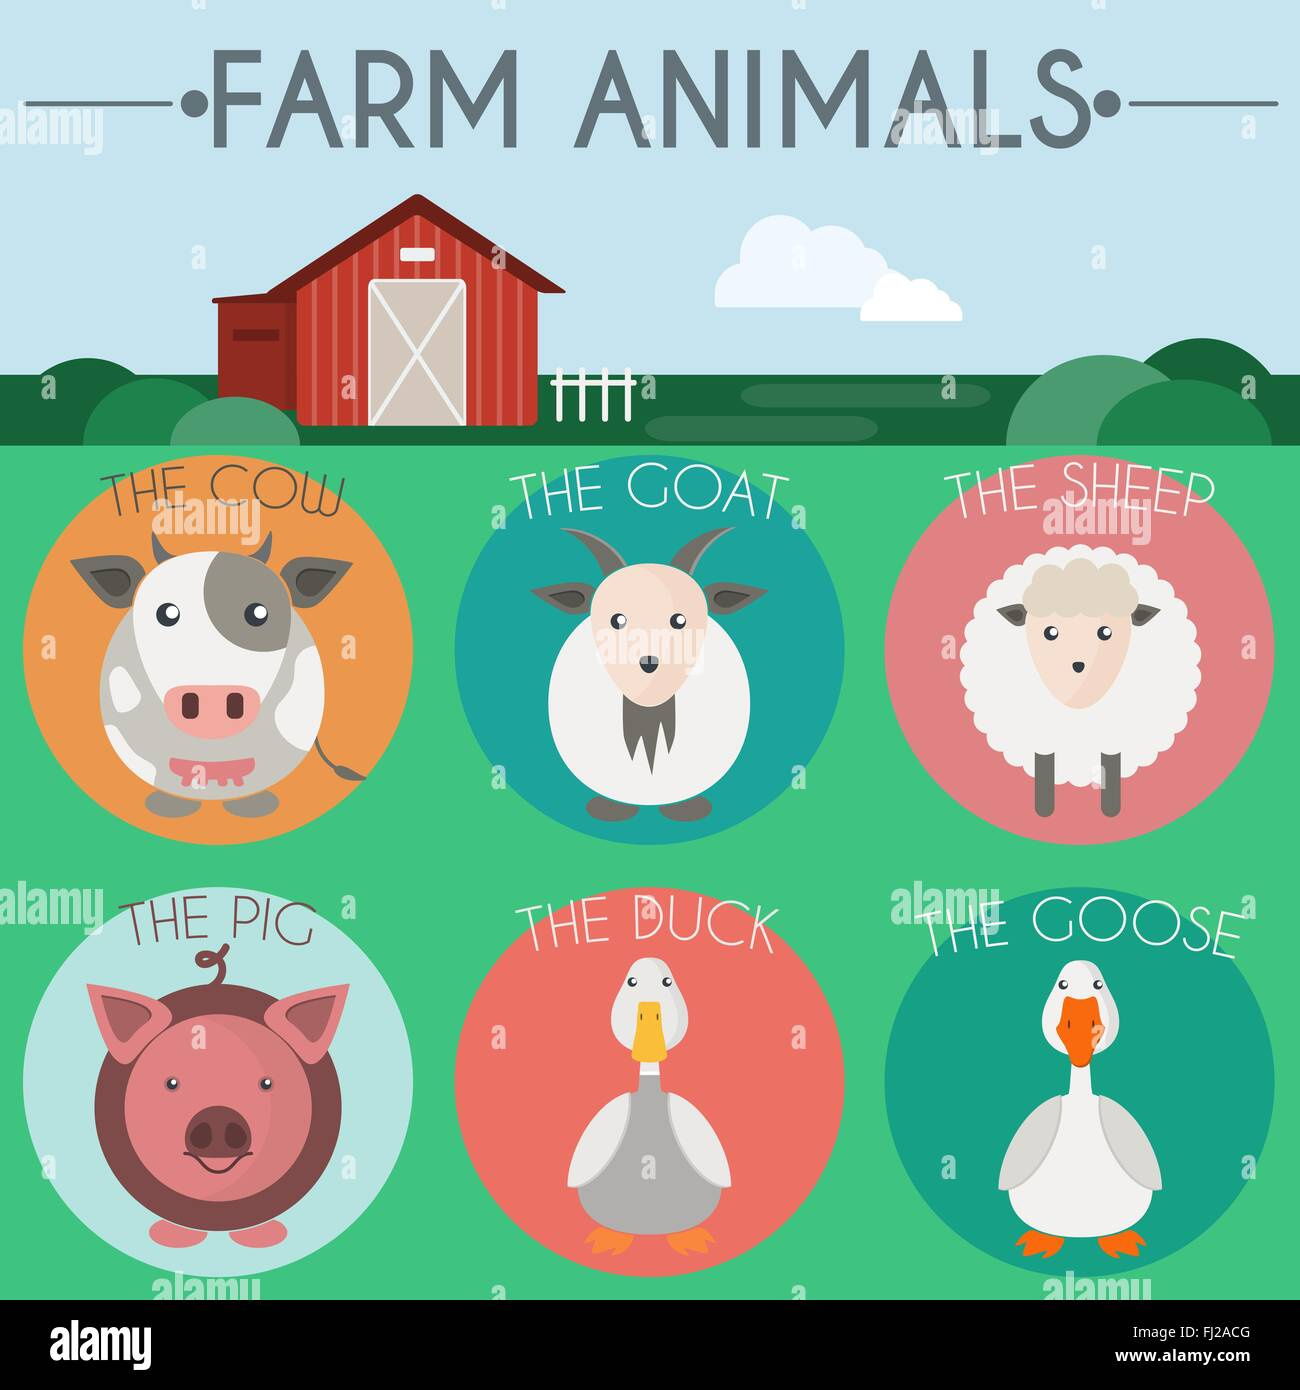 Farm Animals Icon Set Countryside Landscape View Barn In The Field Colorful Round Icons Flat Cartoon Style Digital Vector Il